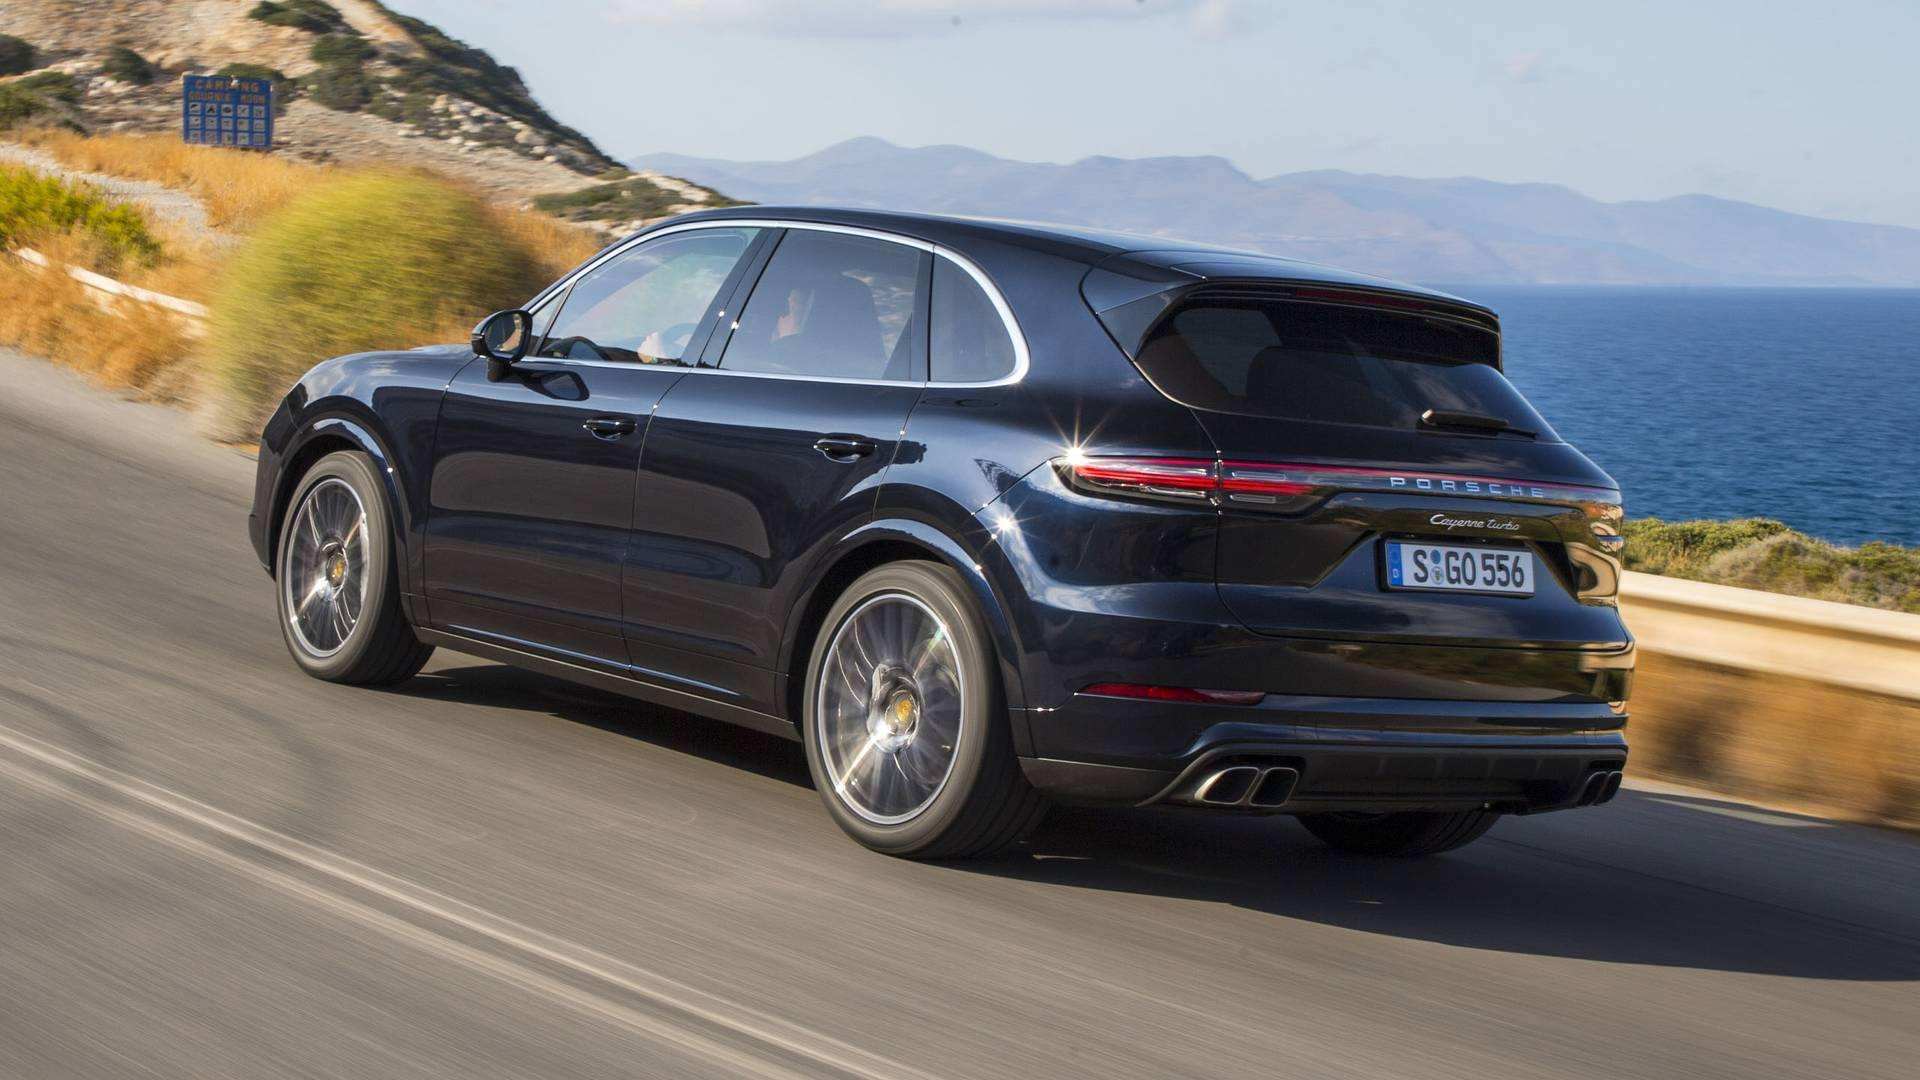 72 Great 2019 Porsche Cayenne New Concept by 2019 Porsche Cayenne